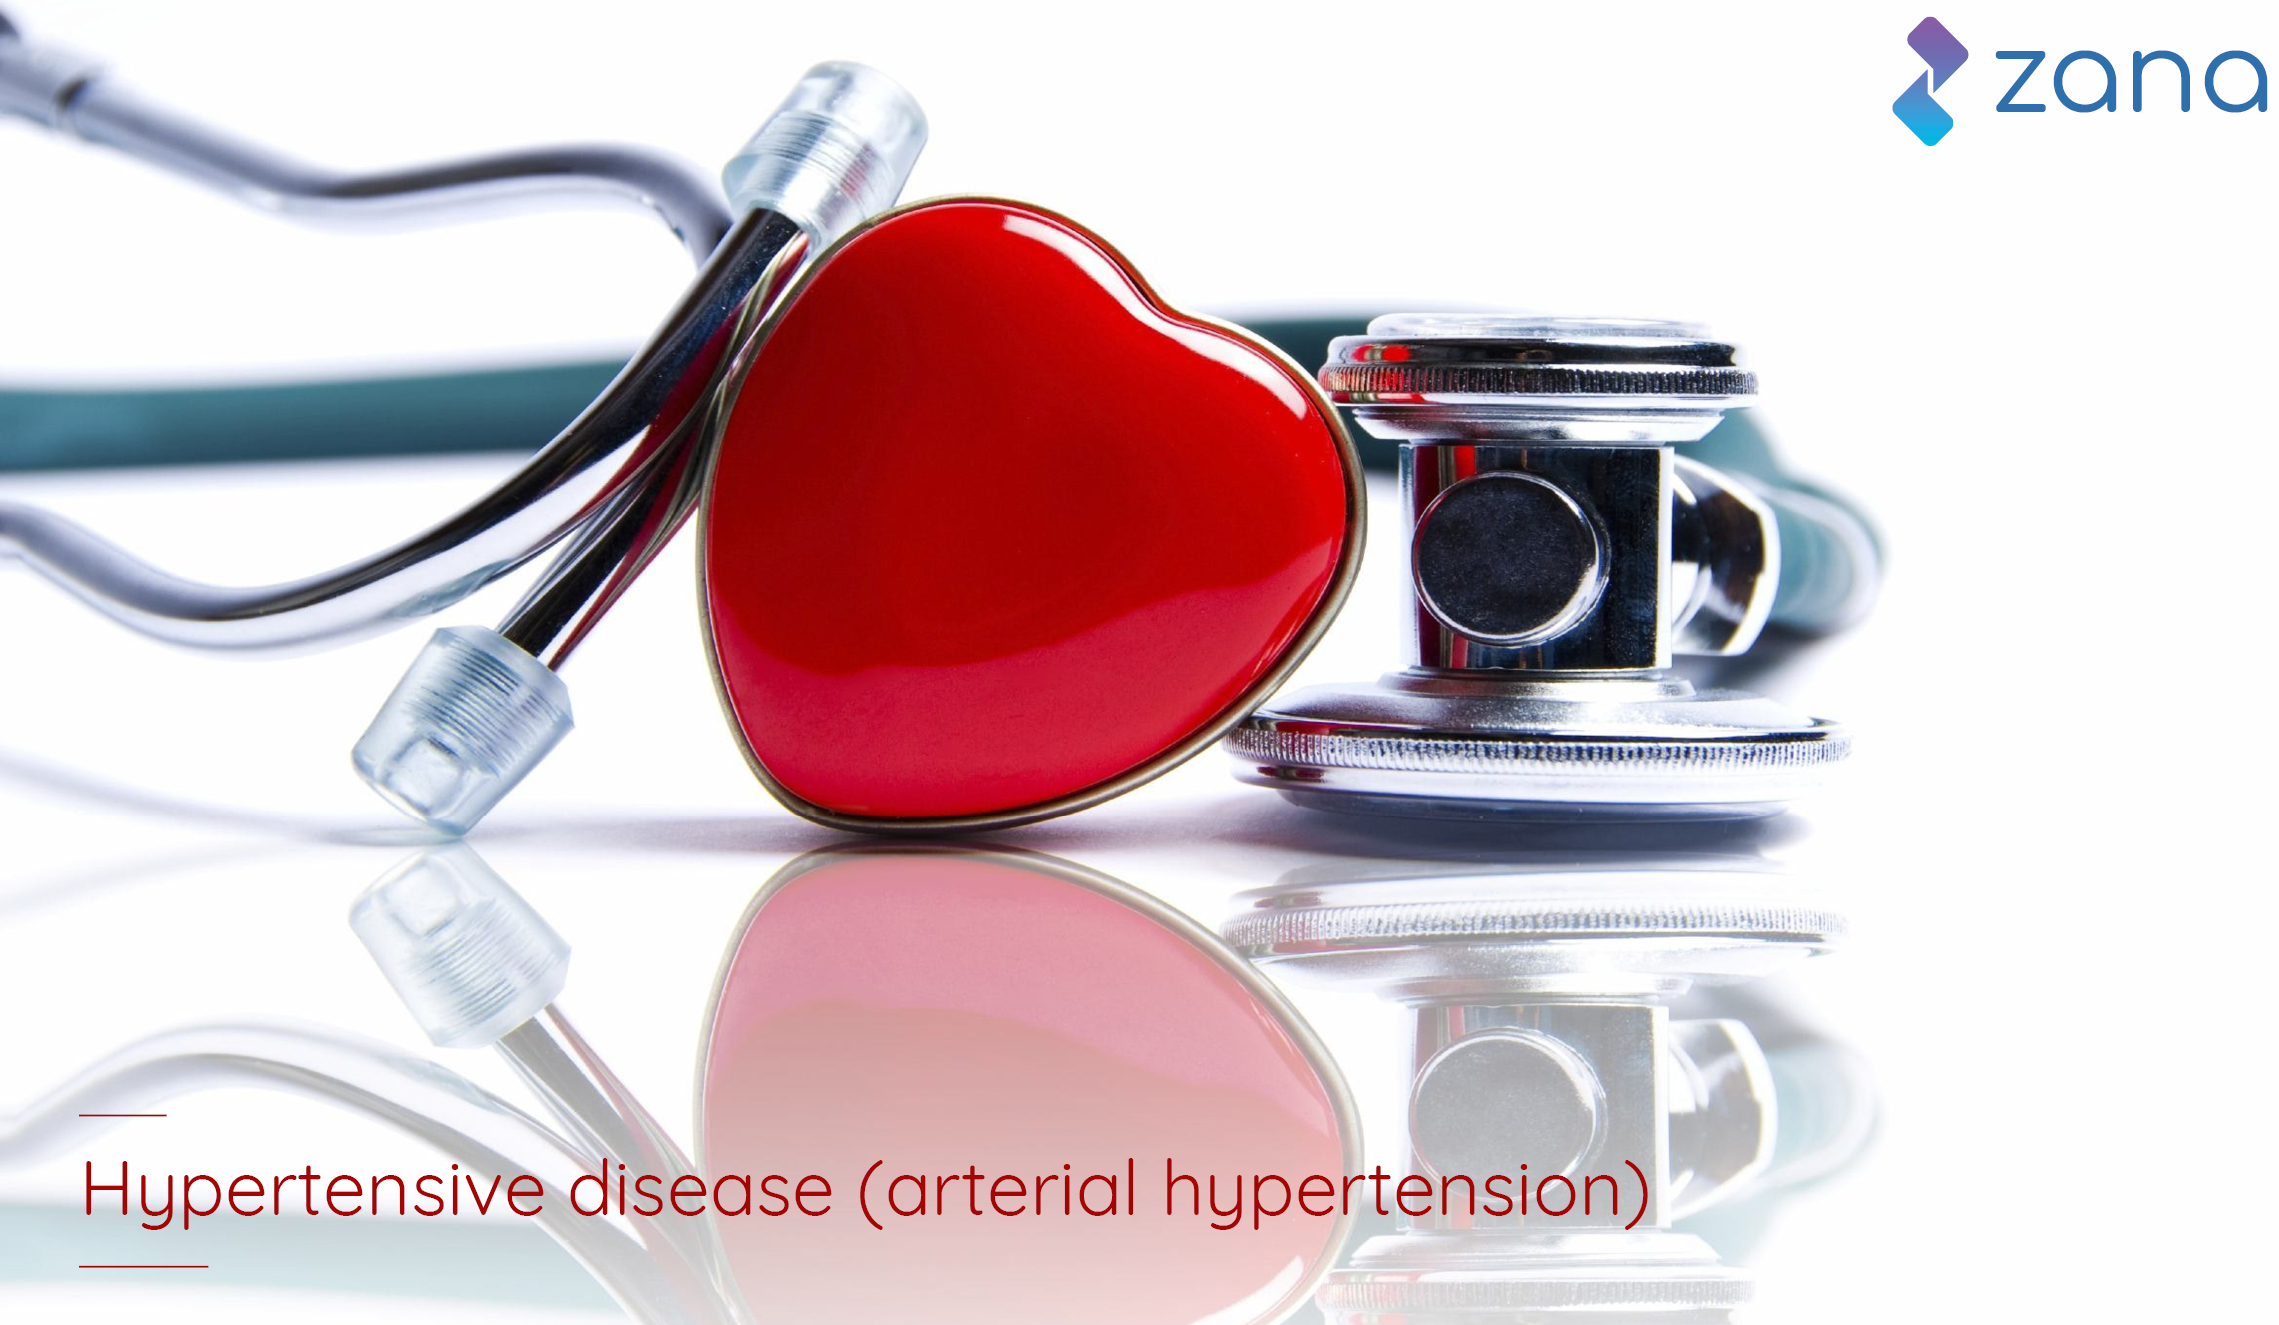 blood pressure,BP, Hypertension,Hypertensive disorder,systemic arterial disorder, Hypertensive vascular disease, HBP, Hypertensive (disorder),systemic arterial,High blood pressure,Hypertension,Systemic arterial hypertension,BP-High blood pressure,High blood pressure disorder,HT-Hypertension,HTN-Hypertension,Hypertensive vascular degeneration,Arterial hypotension,Hypopiesis,Low blood pressure (disorder),vascular hypertensive disorder,hyperpiesia,hypertensive disease,essential hypertension,